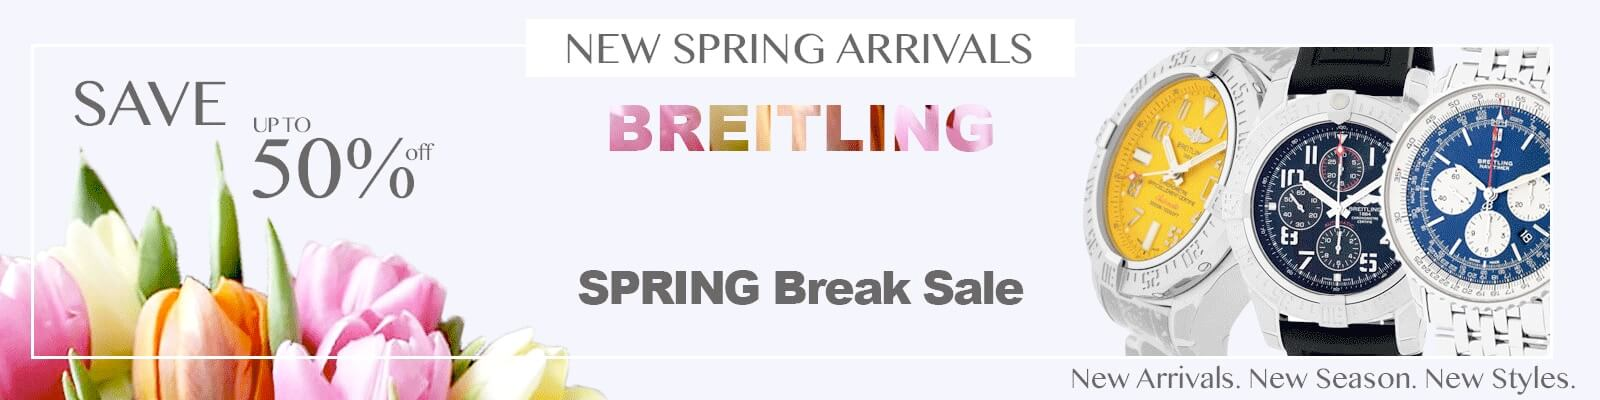 Discount Breitling Mens Watches Up to 50% Off